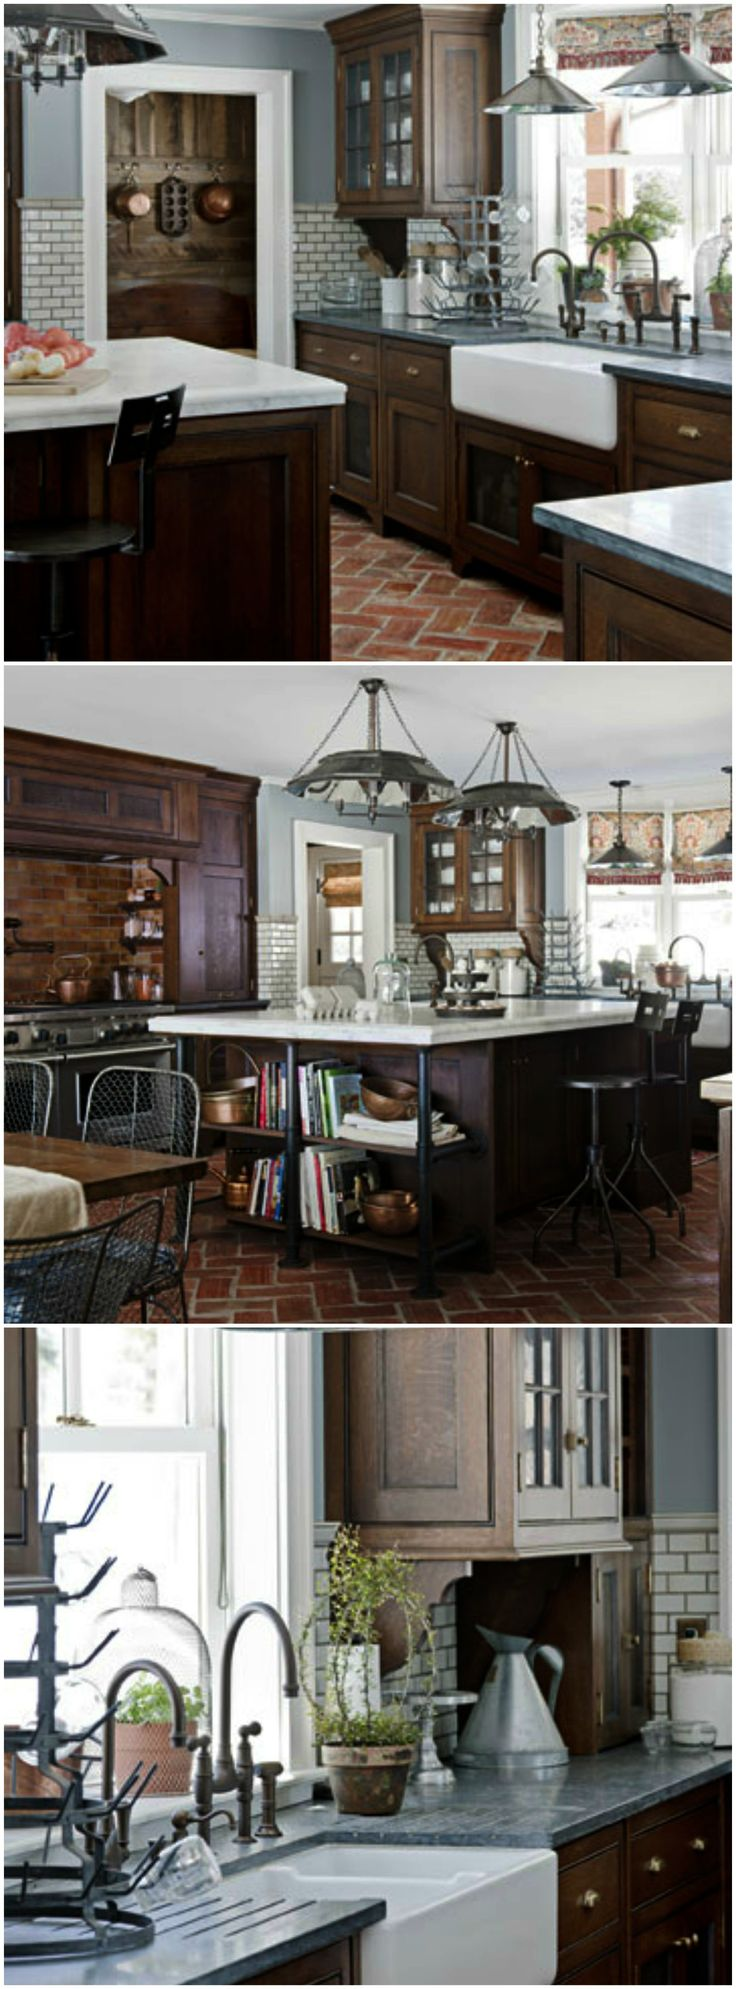 Modern Farmhouse Kitchen Cabinets best 25+ city style kitchen cabinets ideas on pinterest | city